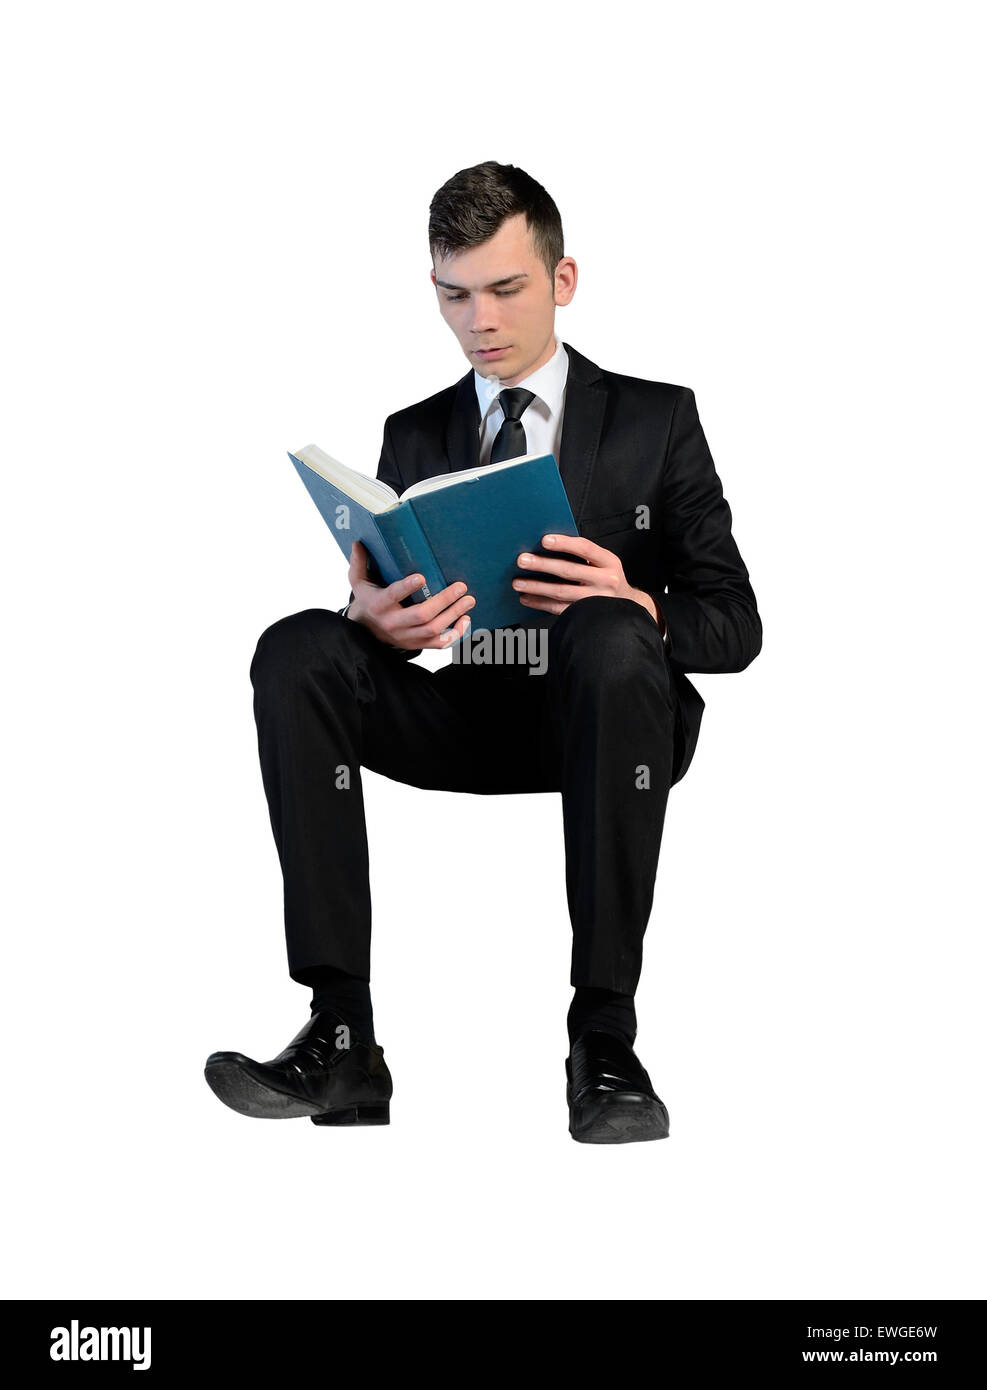 Isolated Business Man Reading Book Stock Photo: 84570273